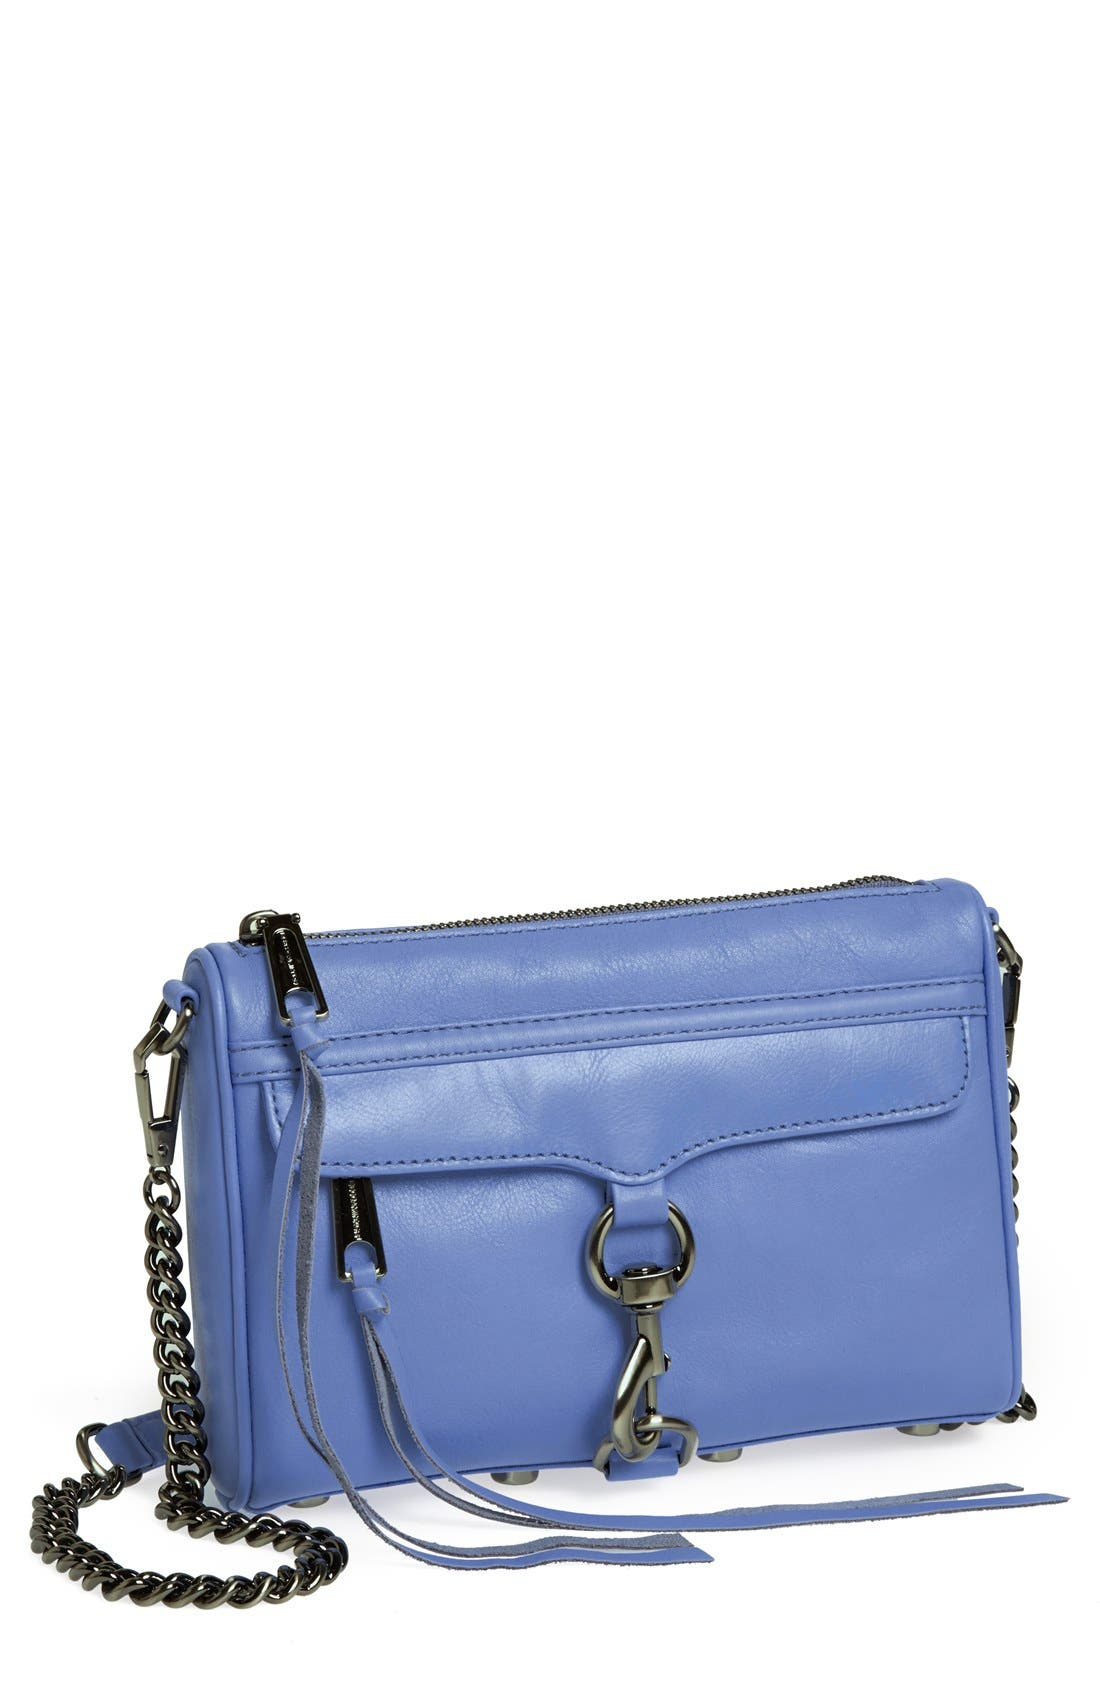 Alternate Image 1 Selected - Rebecca Minkoff 'Mini MAC' Crossbody Bag